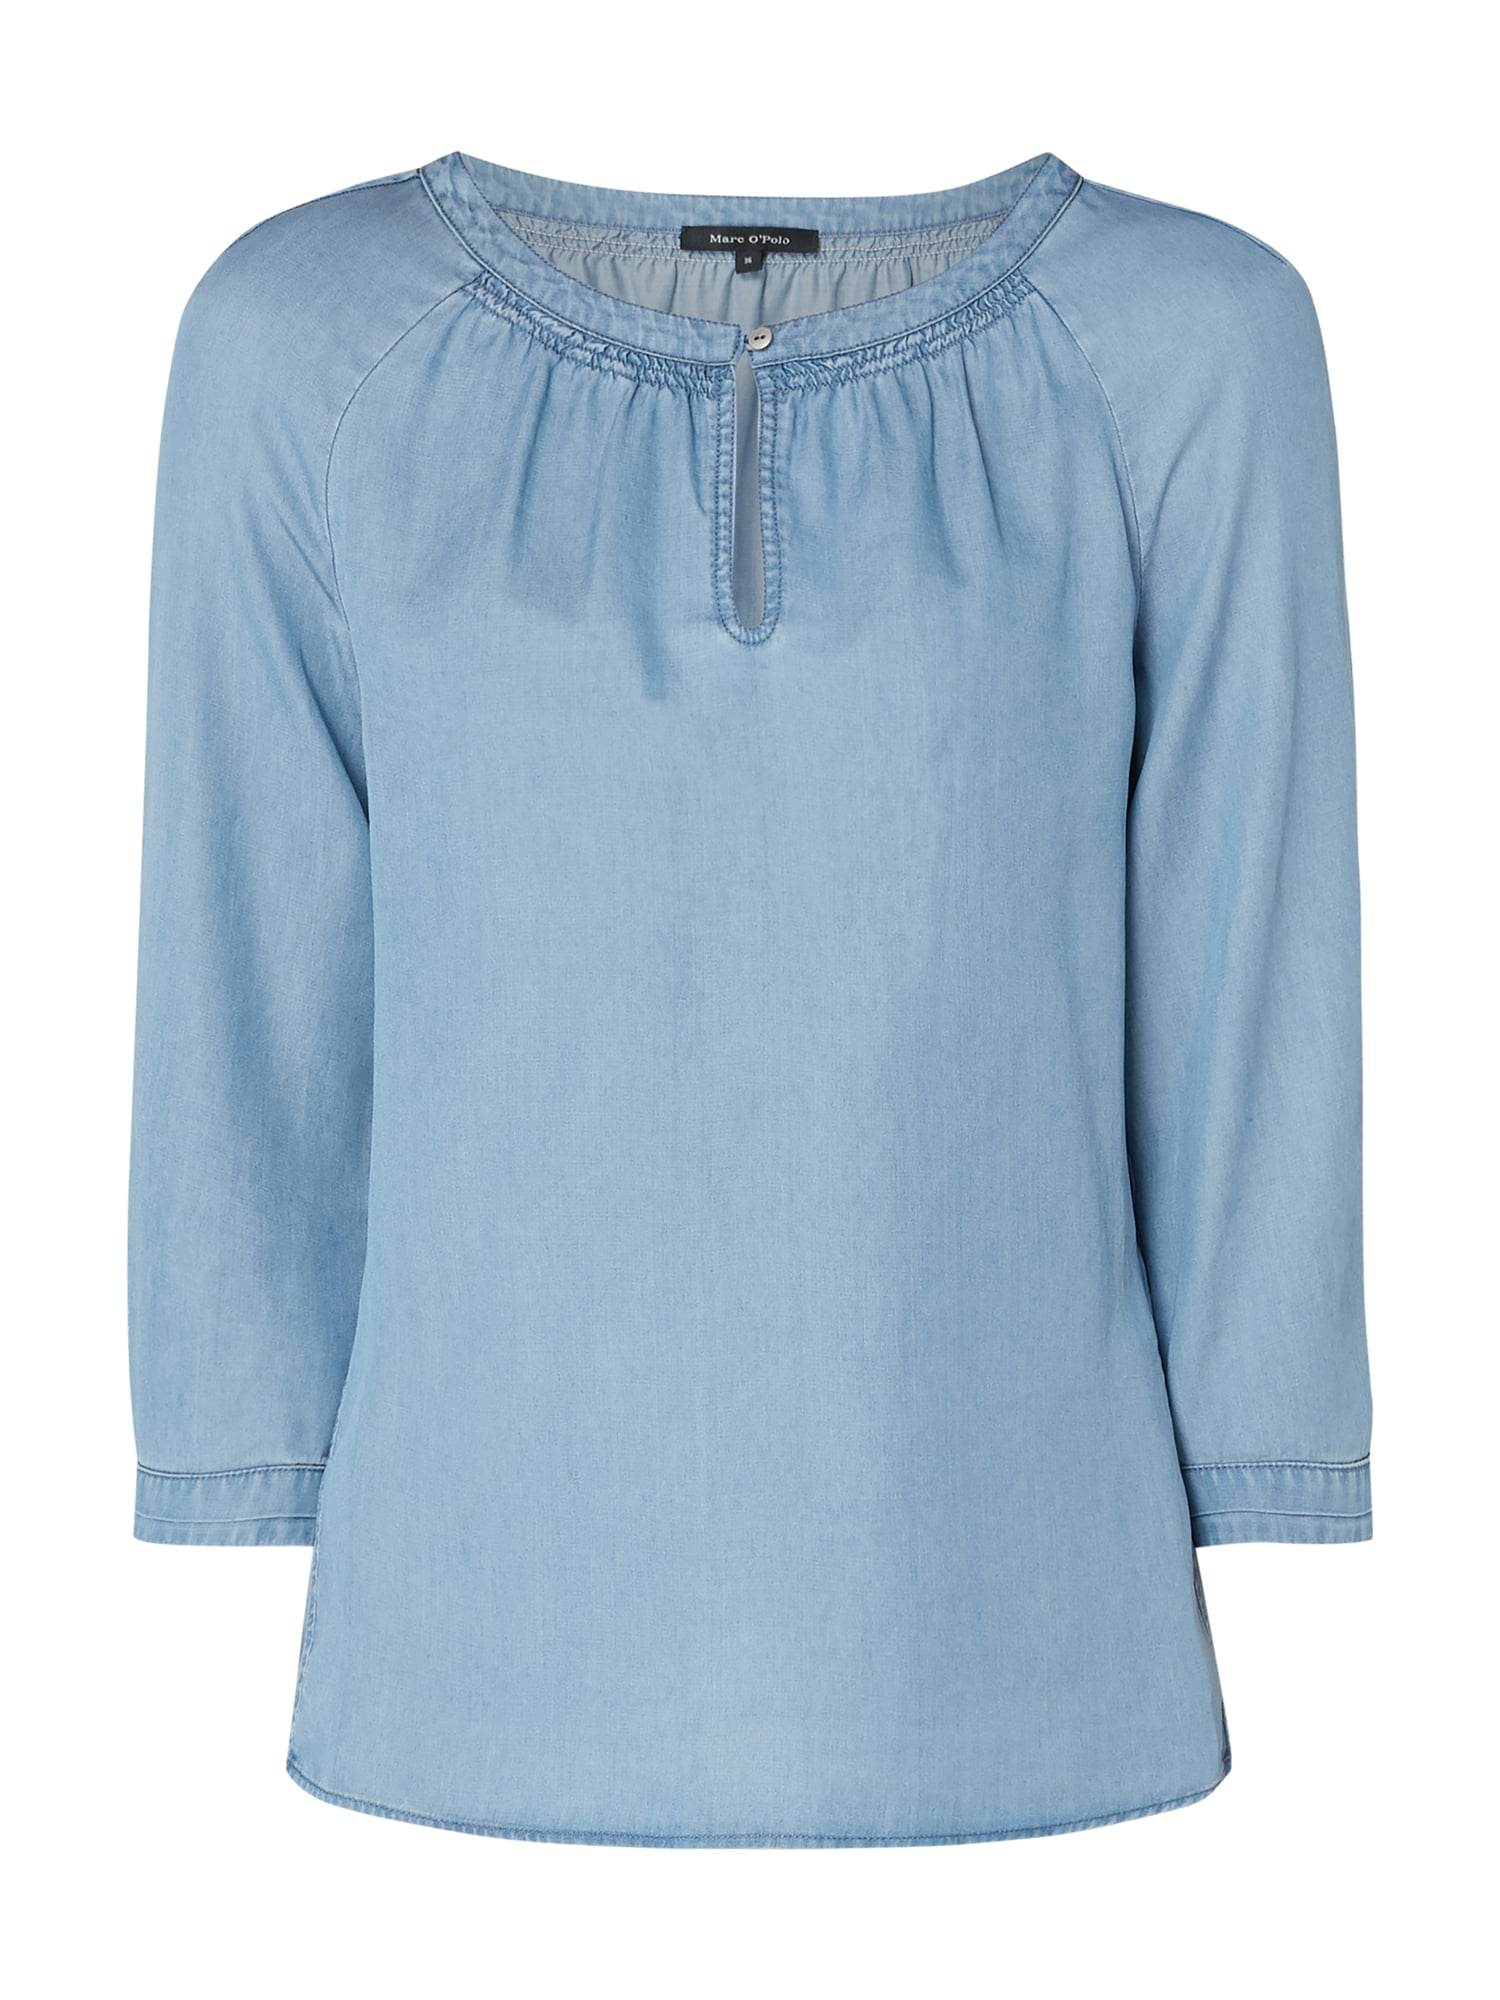 MARC O POLO Blusenshirt in Denimoptik in Blau Türkis online kaufen (4008563) ▷ P&C Online Shop